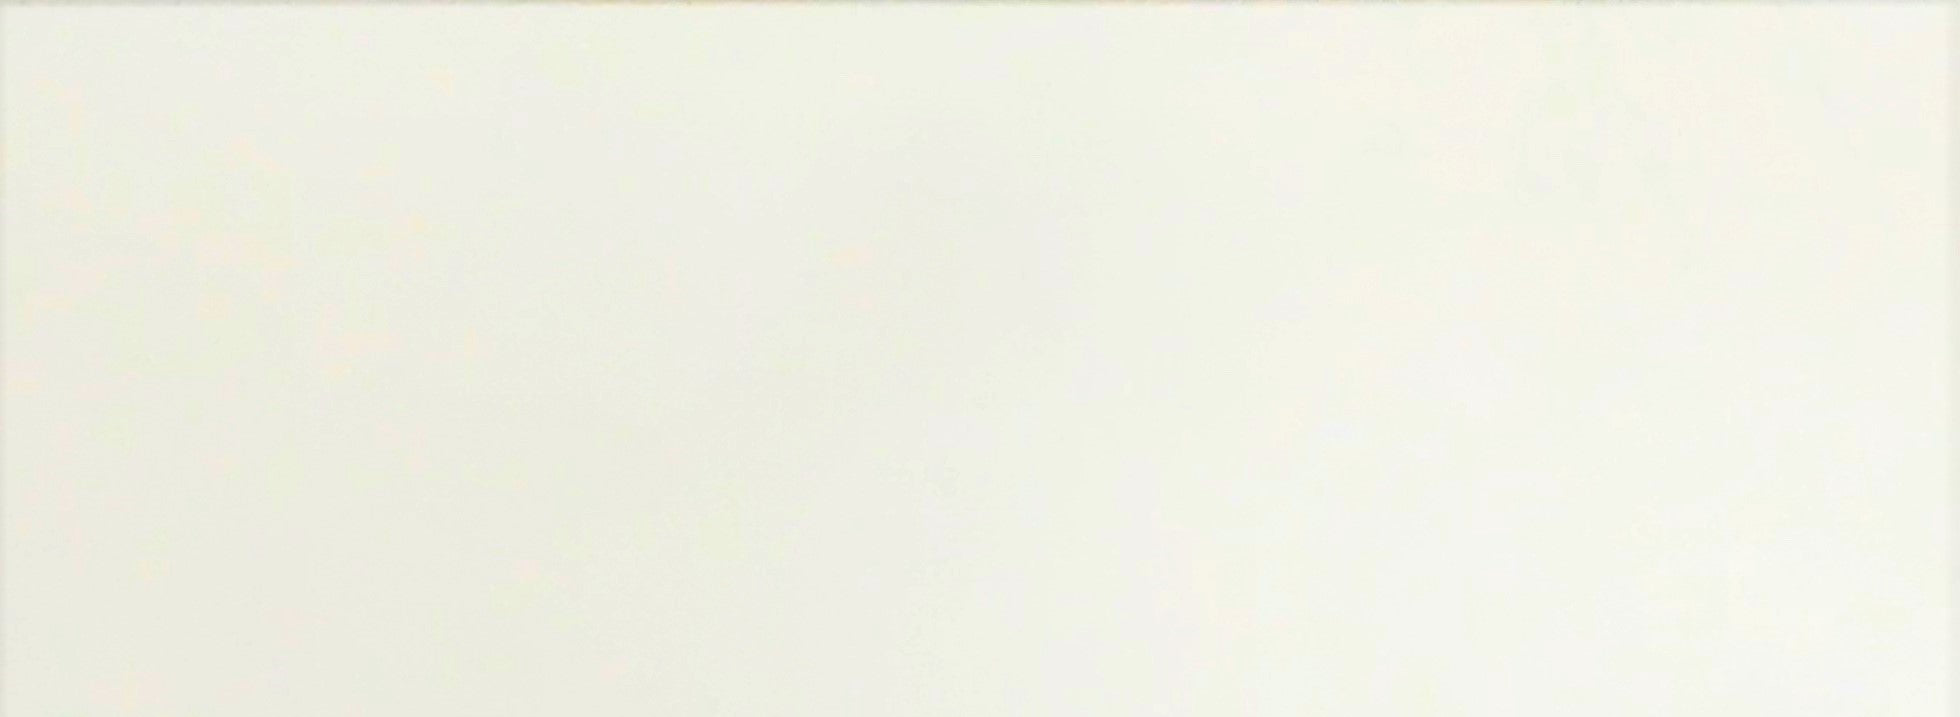 W310 series GT06562 300x100mm Glazed Ceramic Wall Tile Glazed Matt White